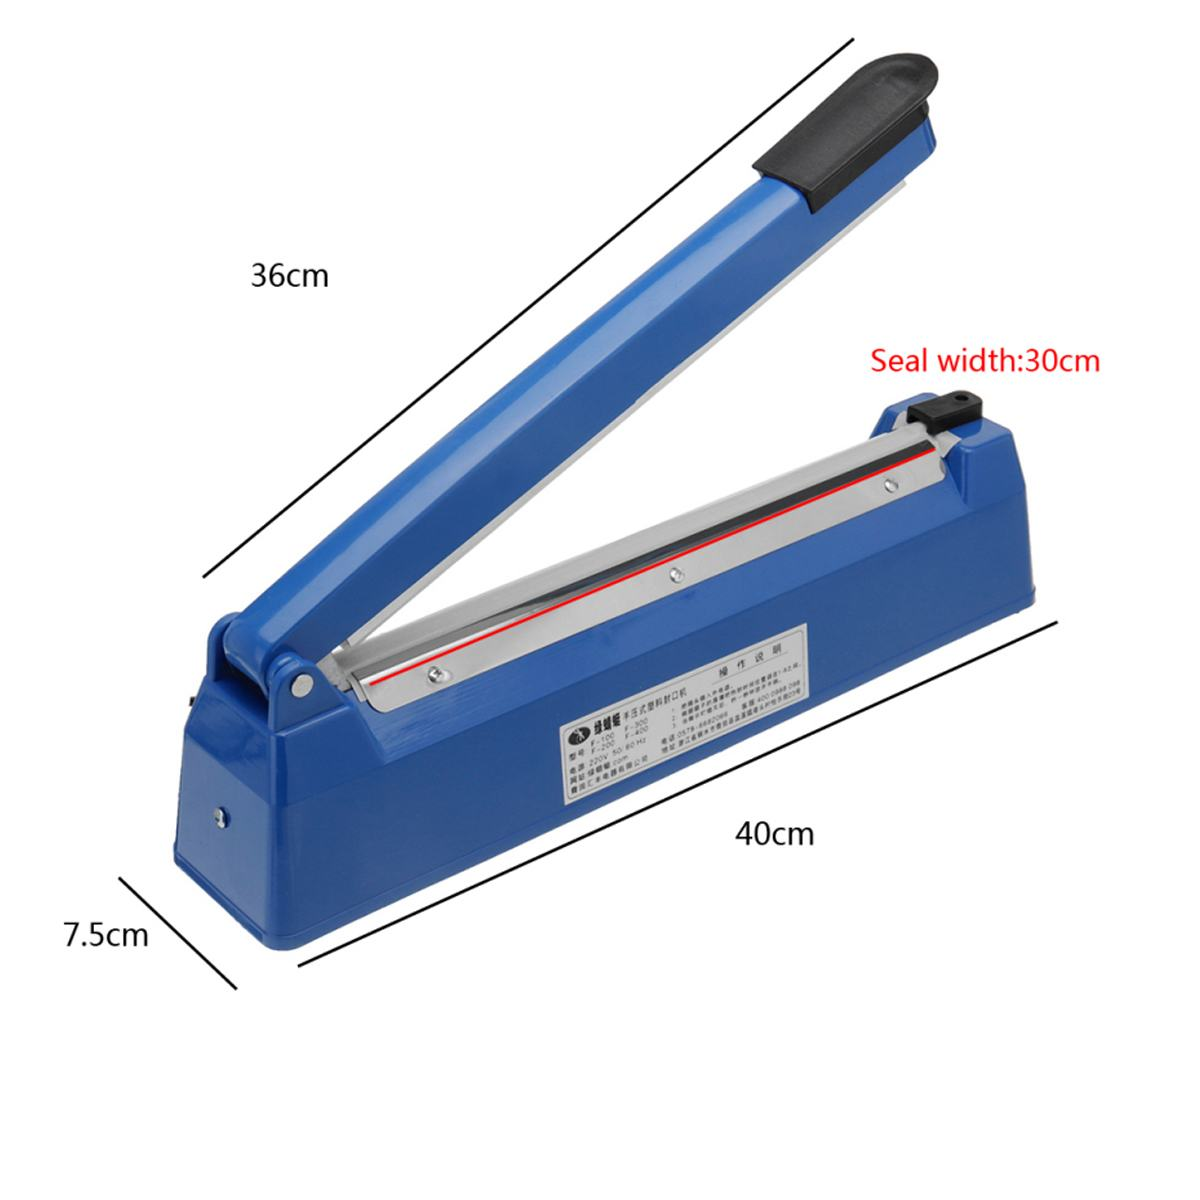 200mm to 300mm High Temperature Resistant Electric Vacuum Food Sealer with Excellent Cooling Base to Keep the Food Fresh 4